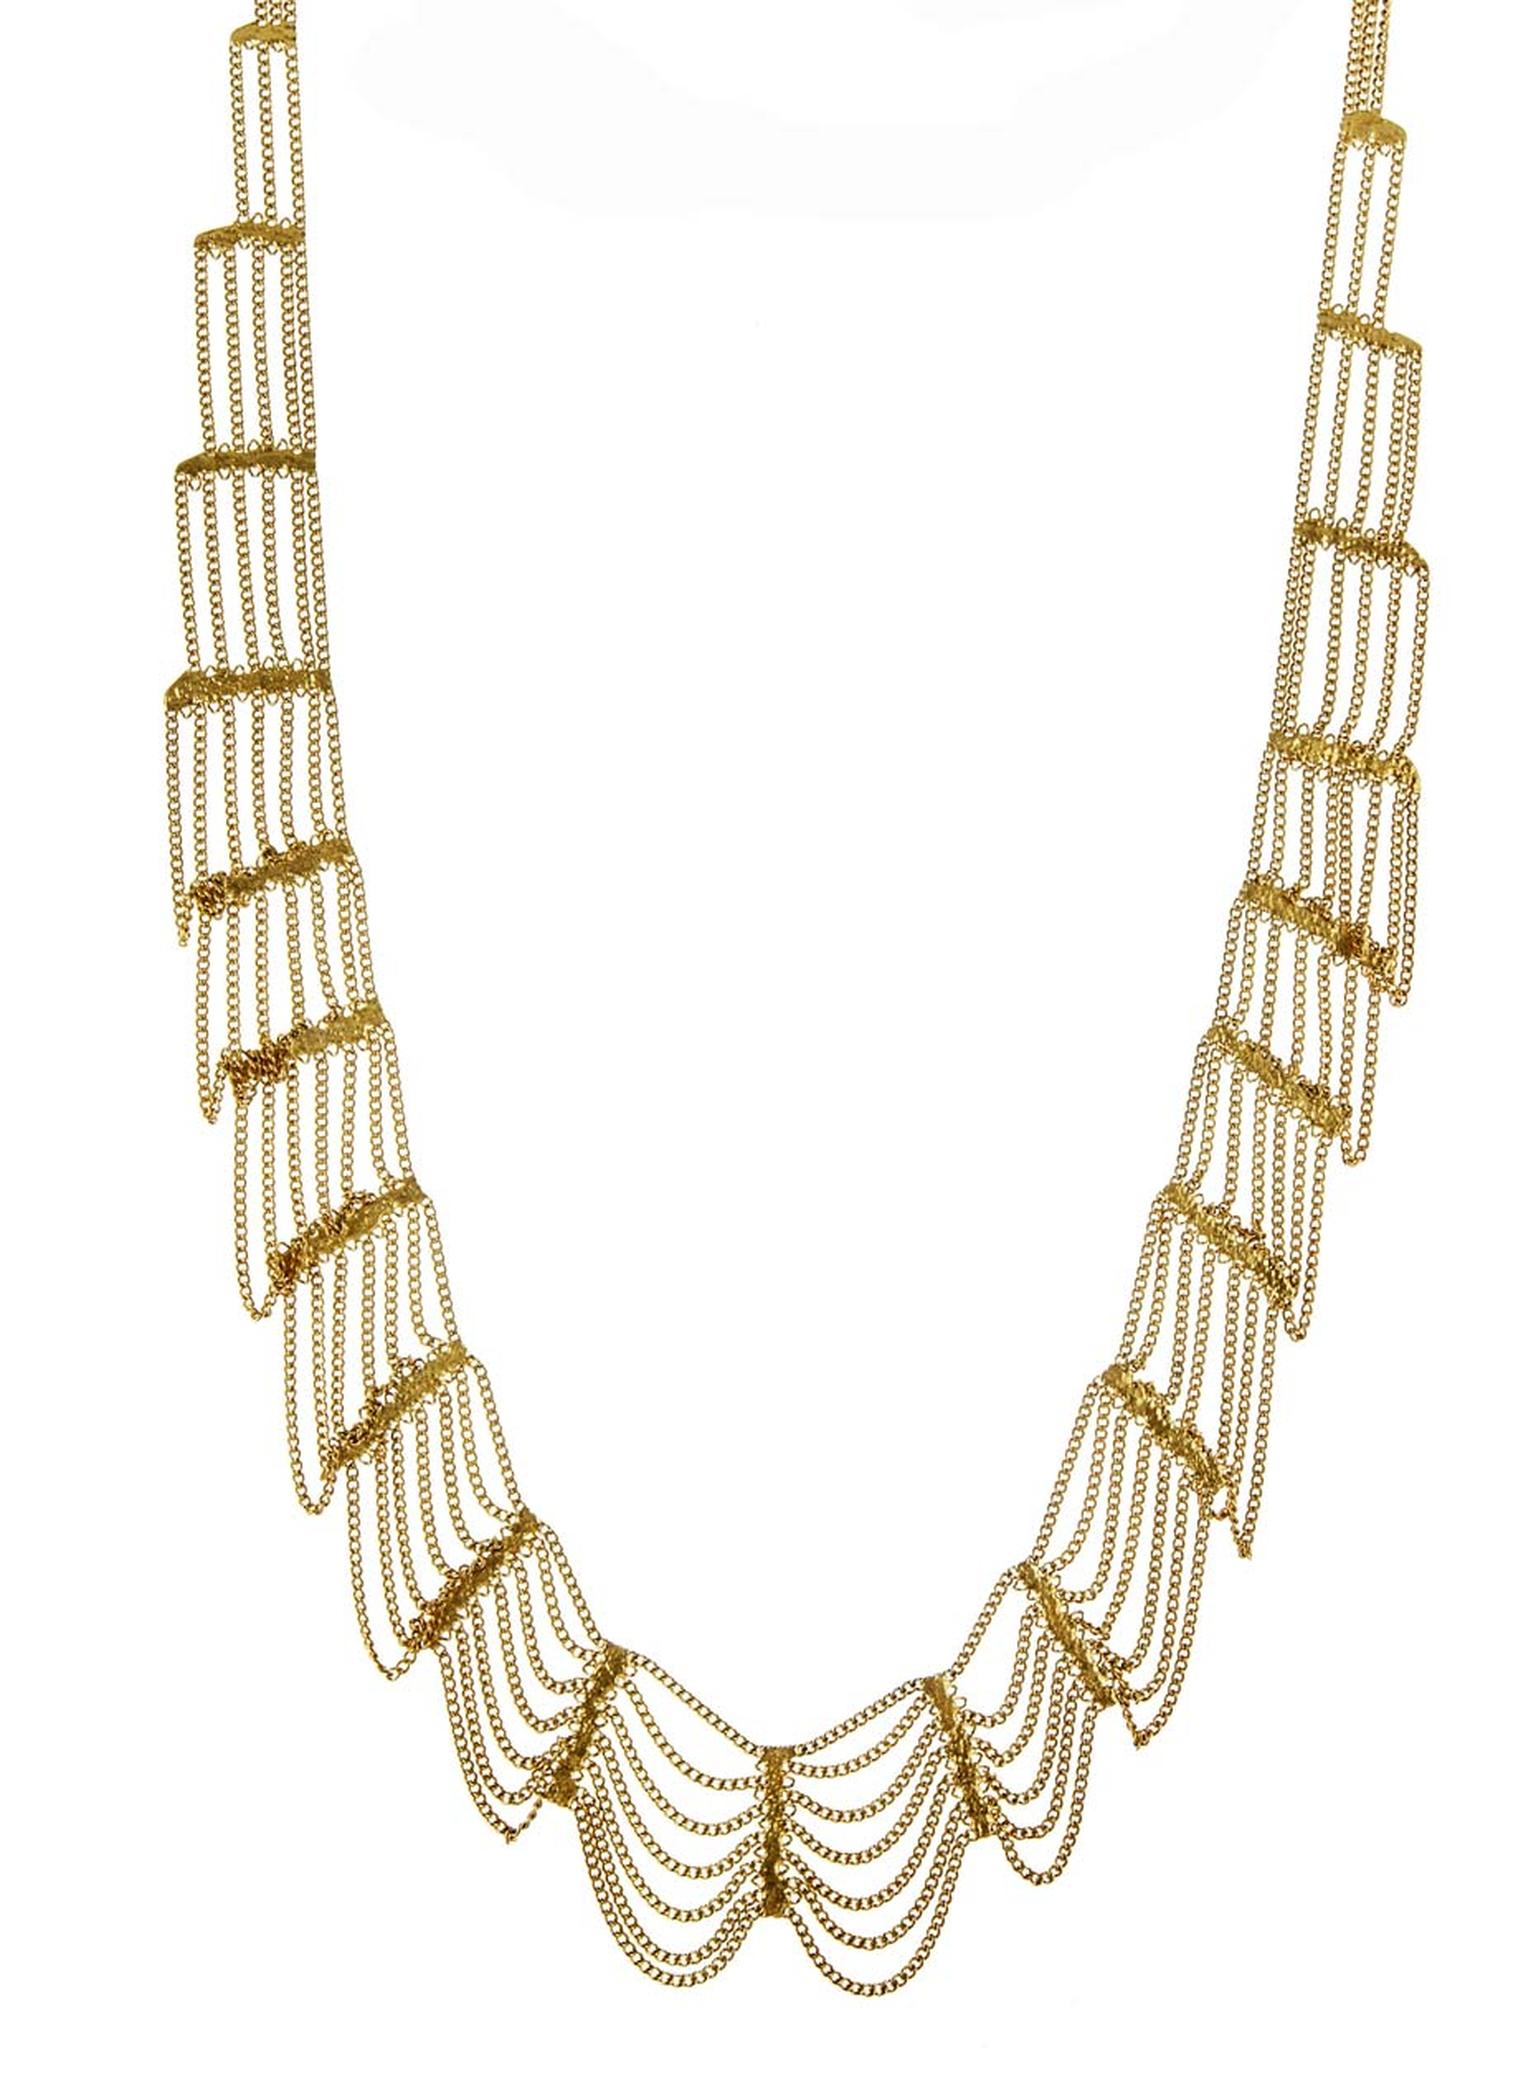 Hannah Keefe Willow necklace in gold plated brass ($480).